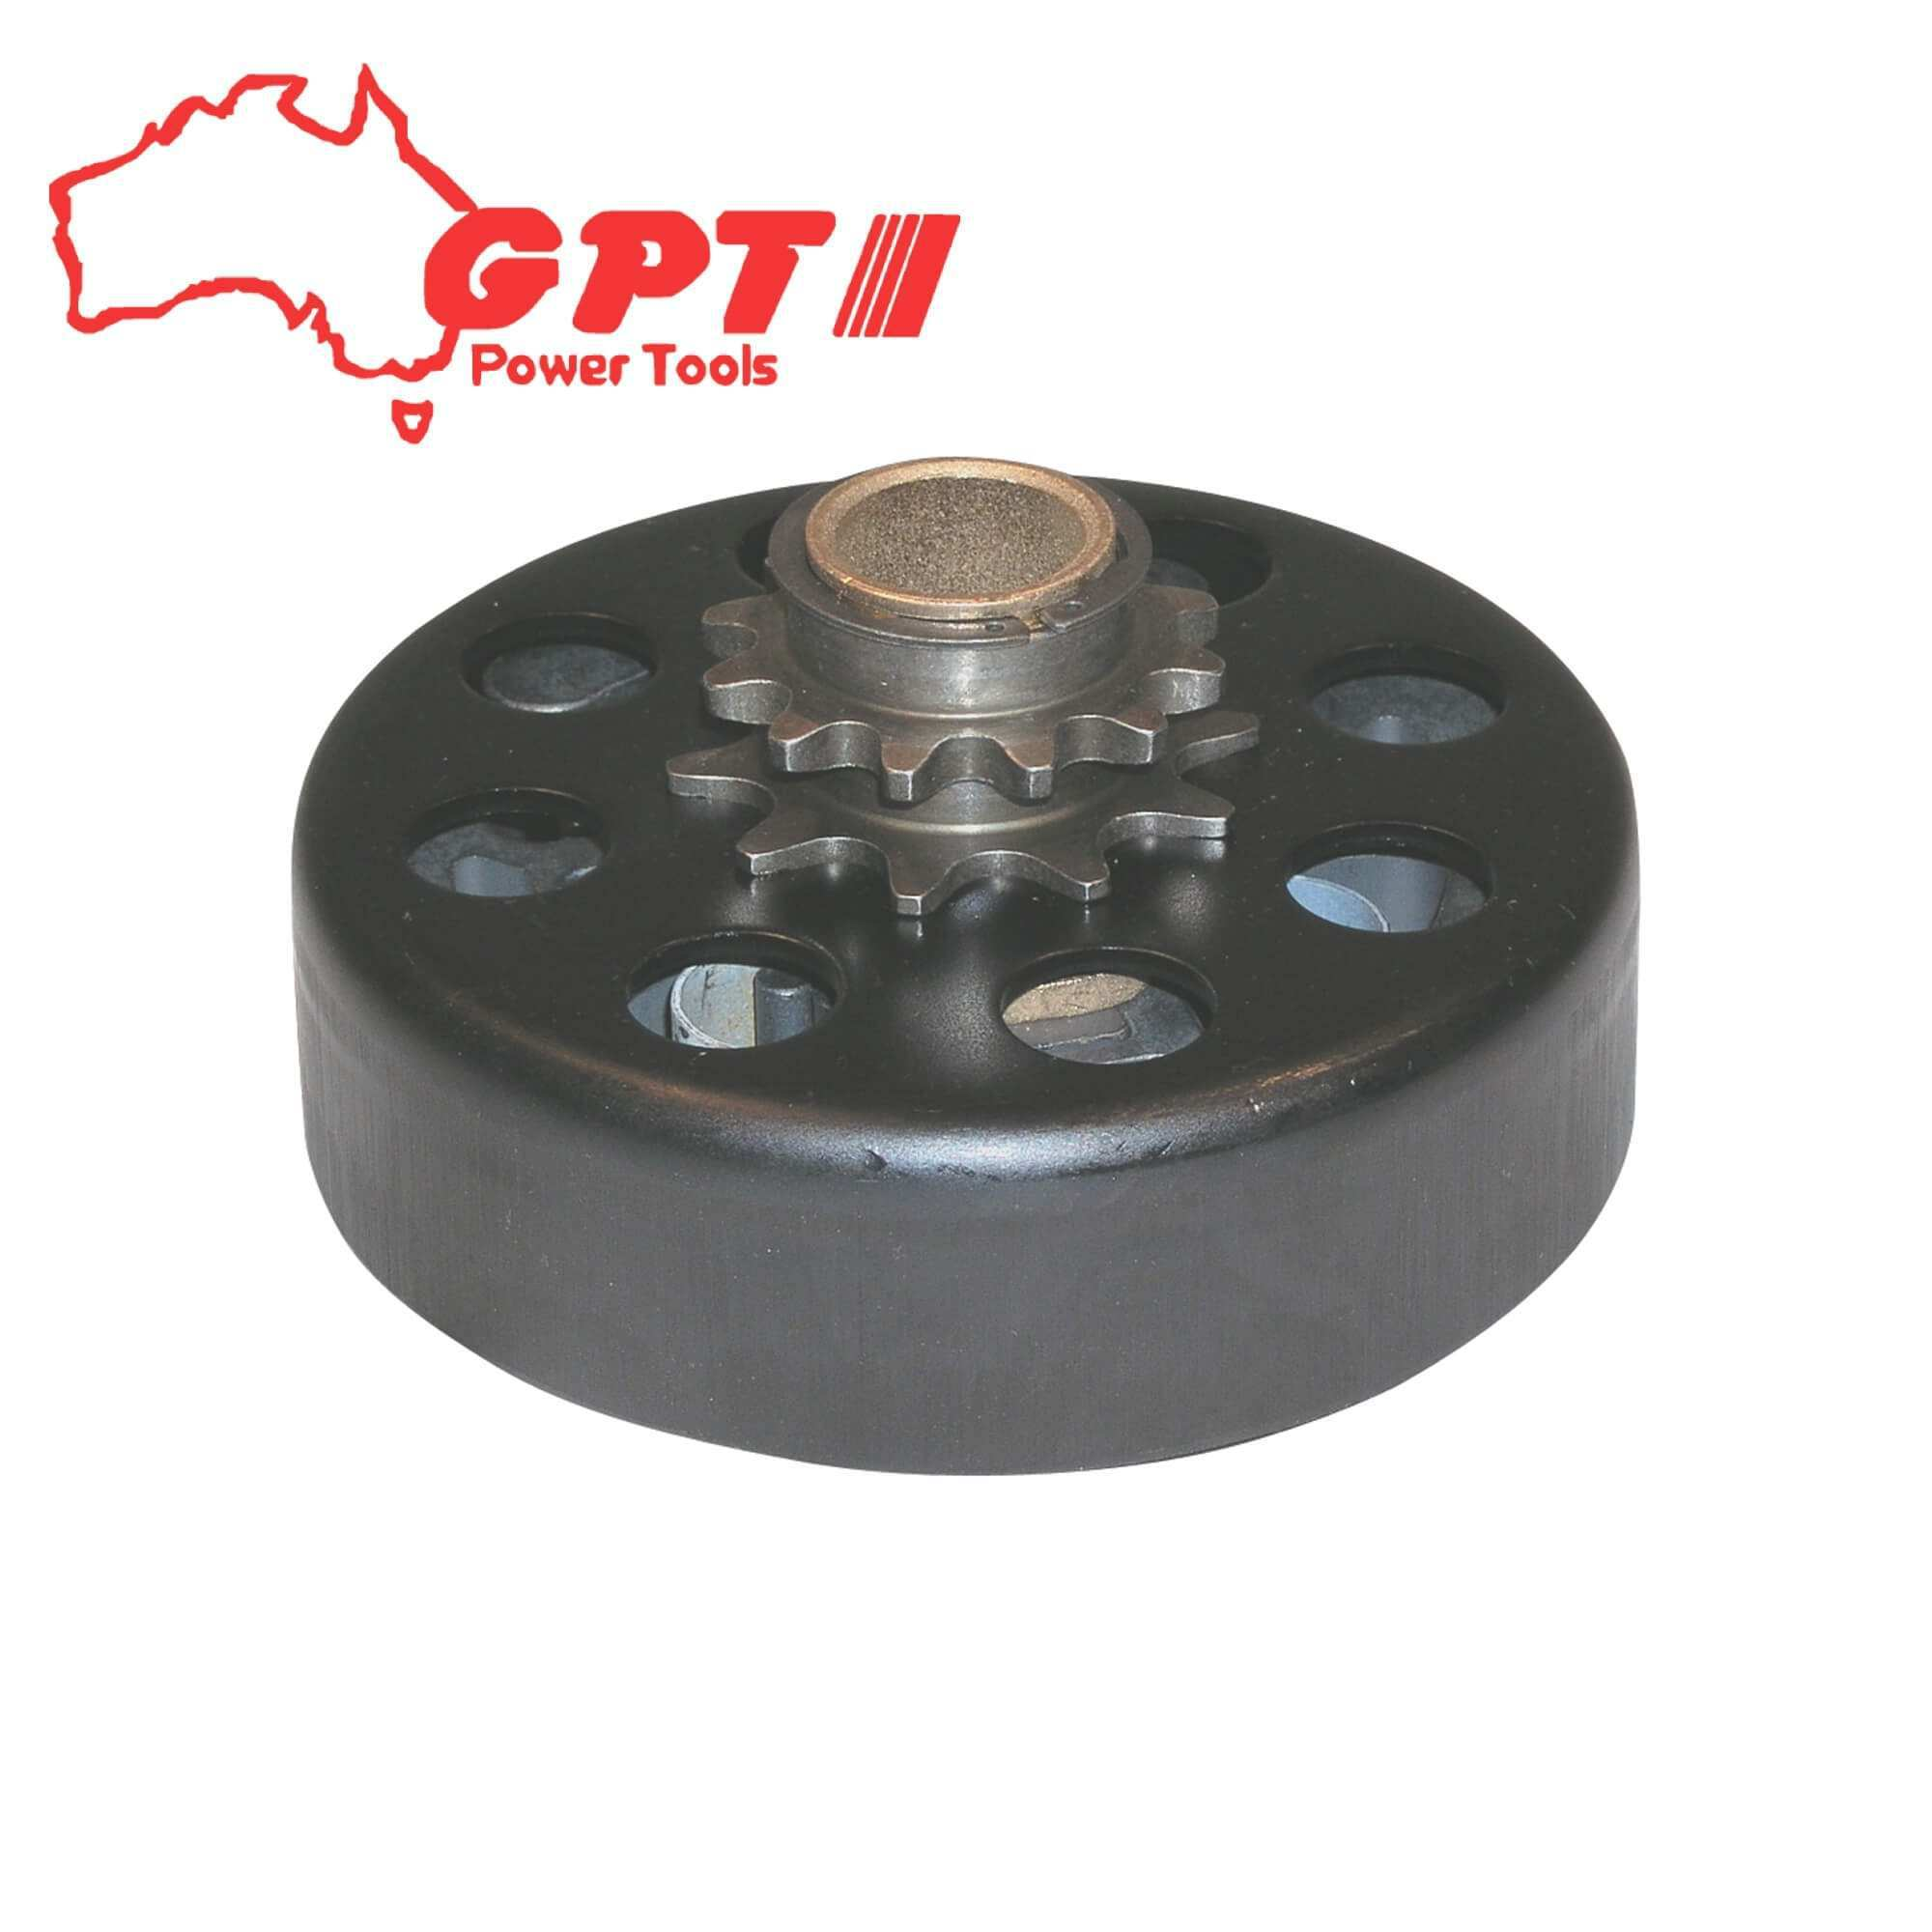 GPT NEW GO KART CENTRIFUGAL AUTOMATIC CLUTCH 3/4